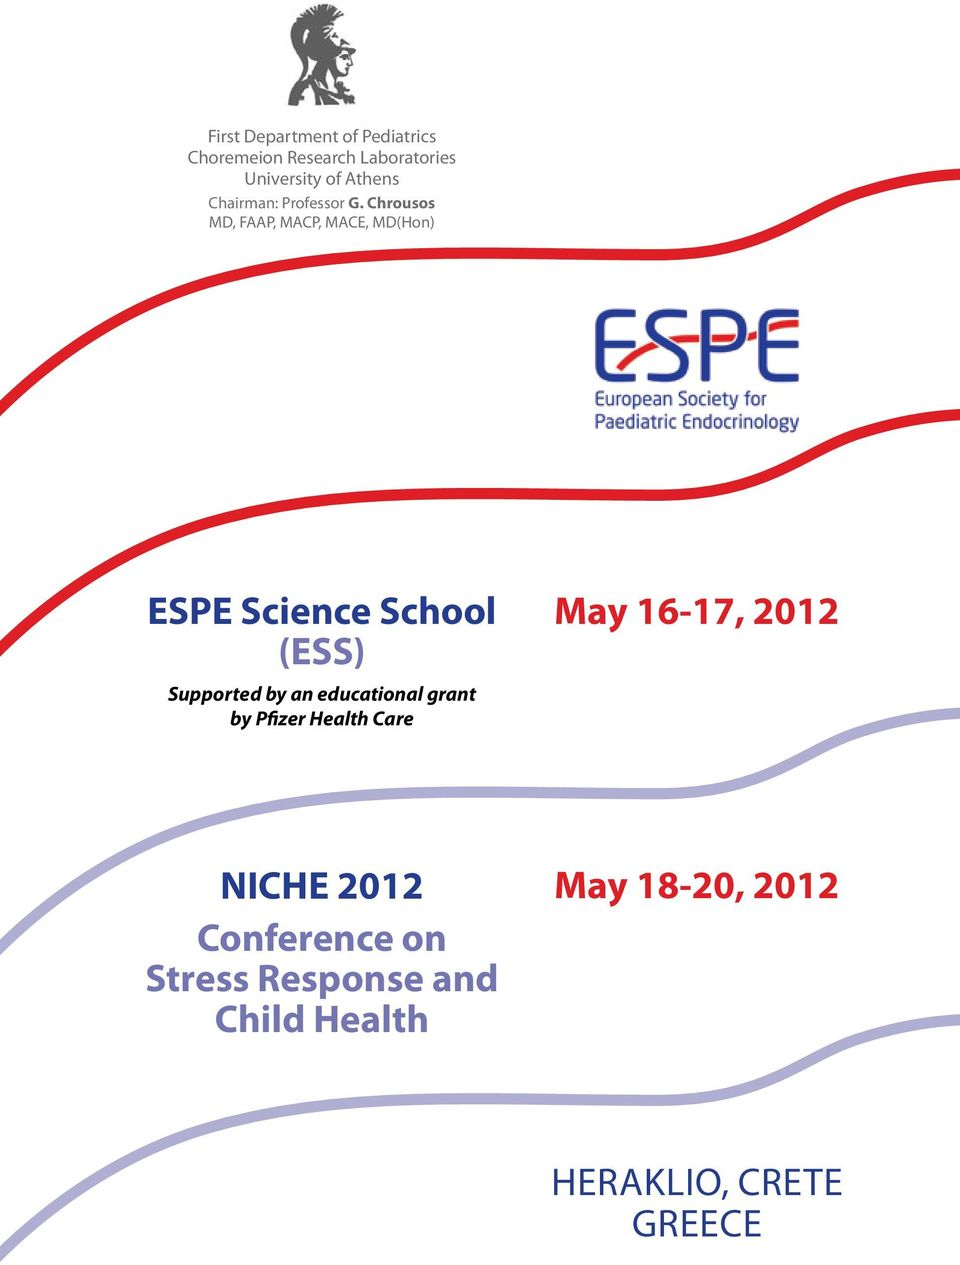 Chrousos MD, FAAP, MACP, MACE, MD(Hon) ESPE Science School (ESS) Supported by an